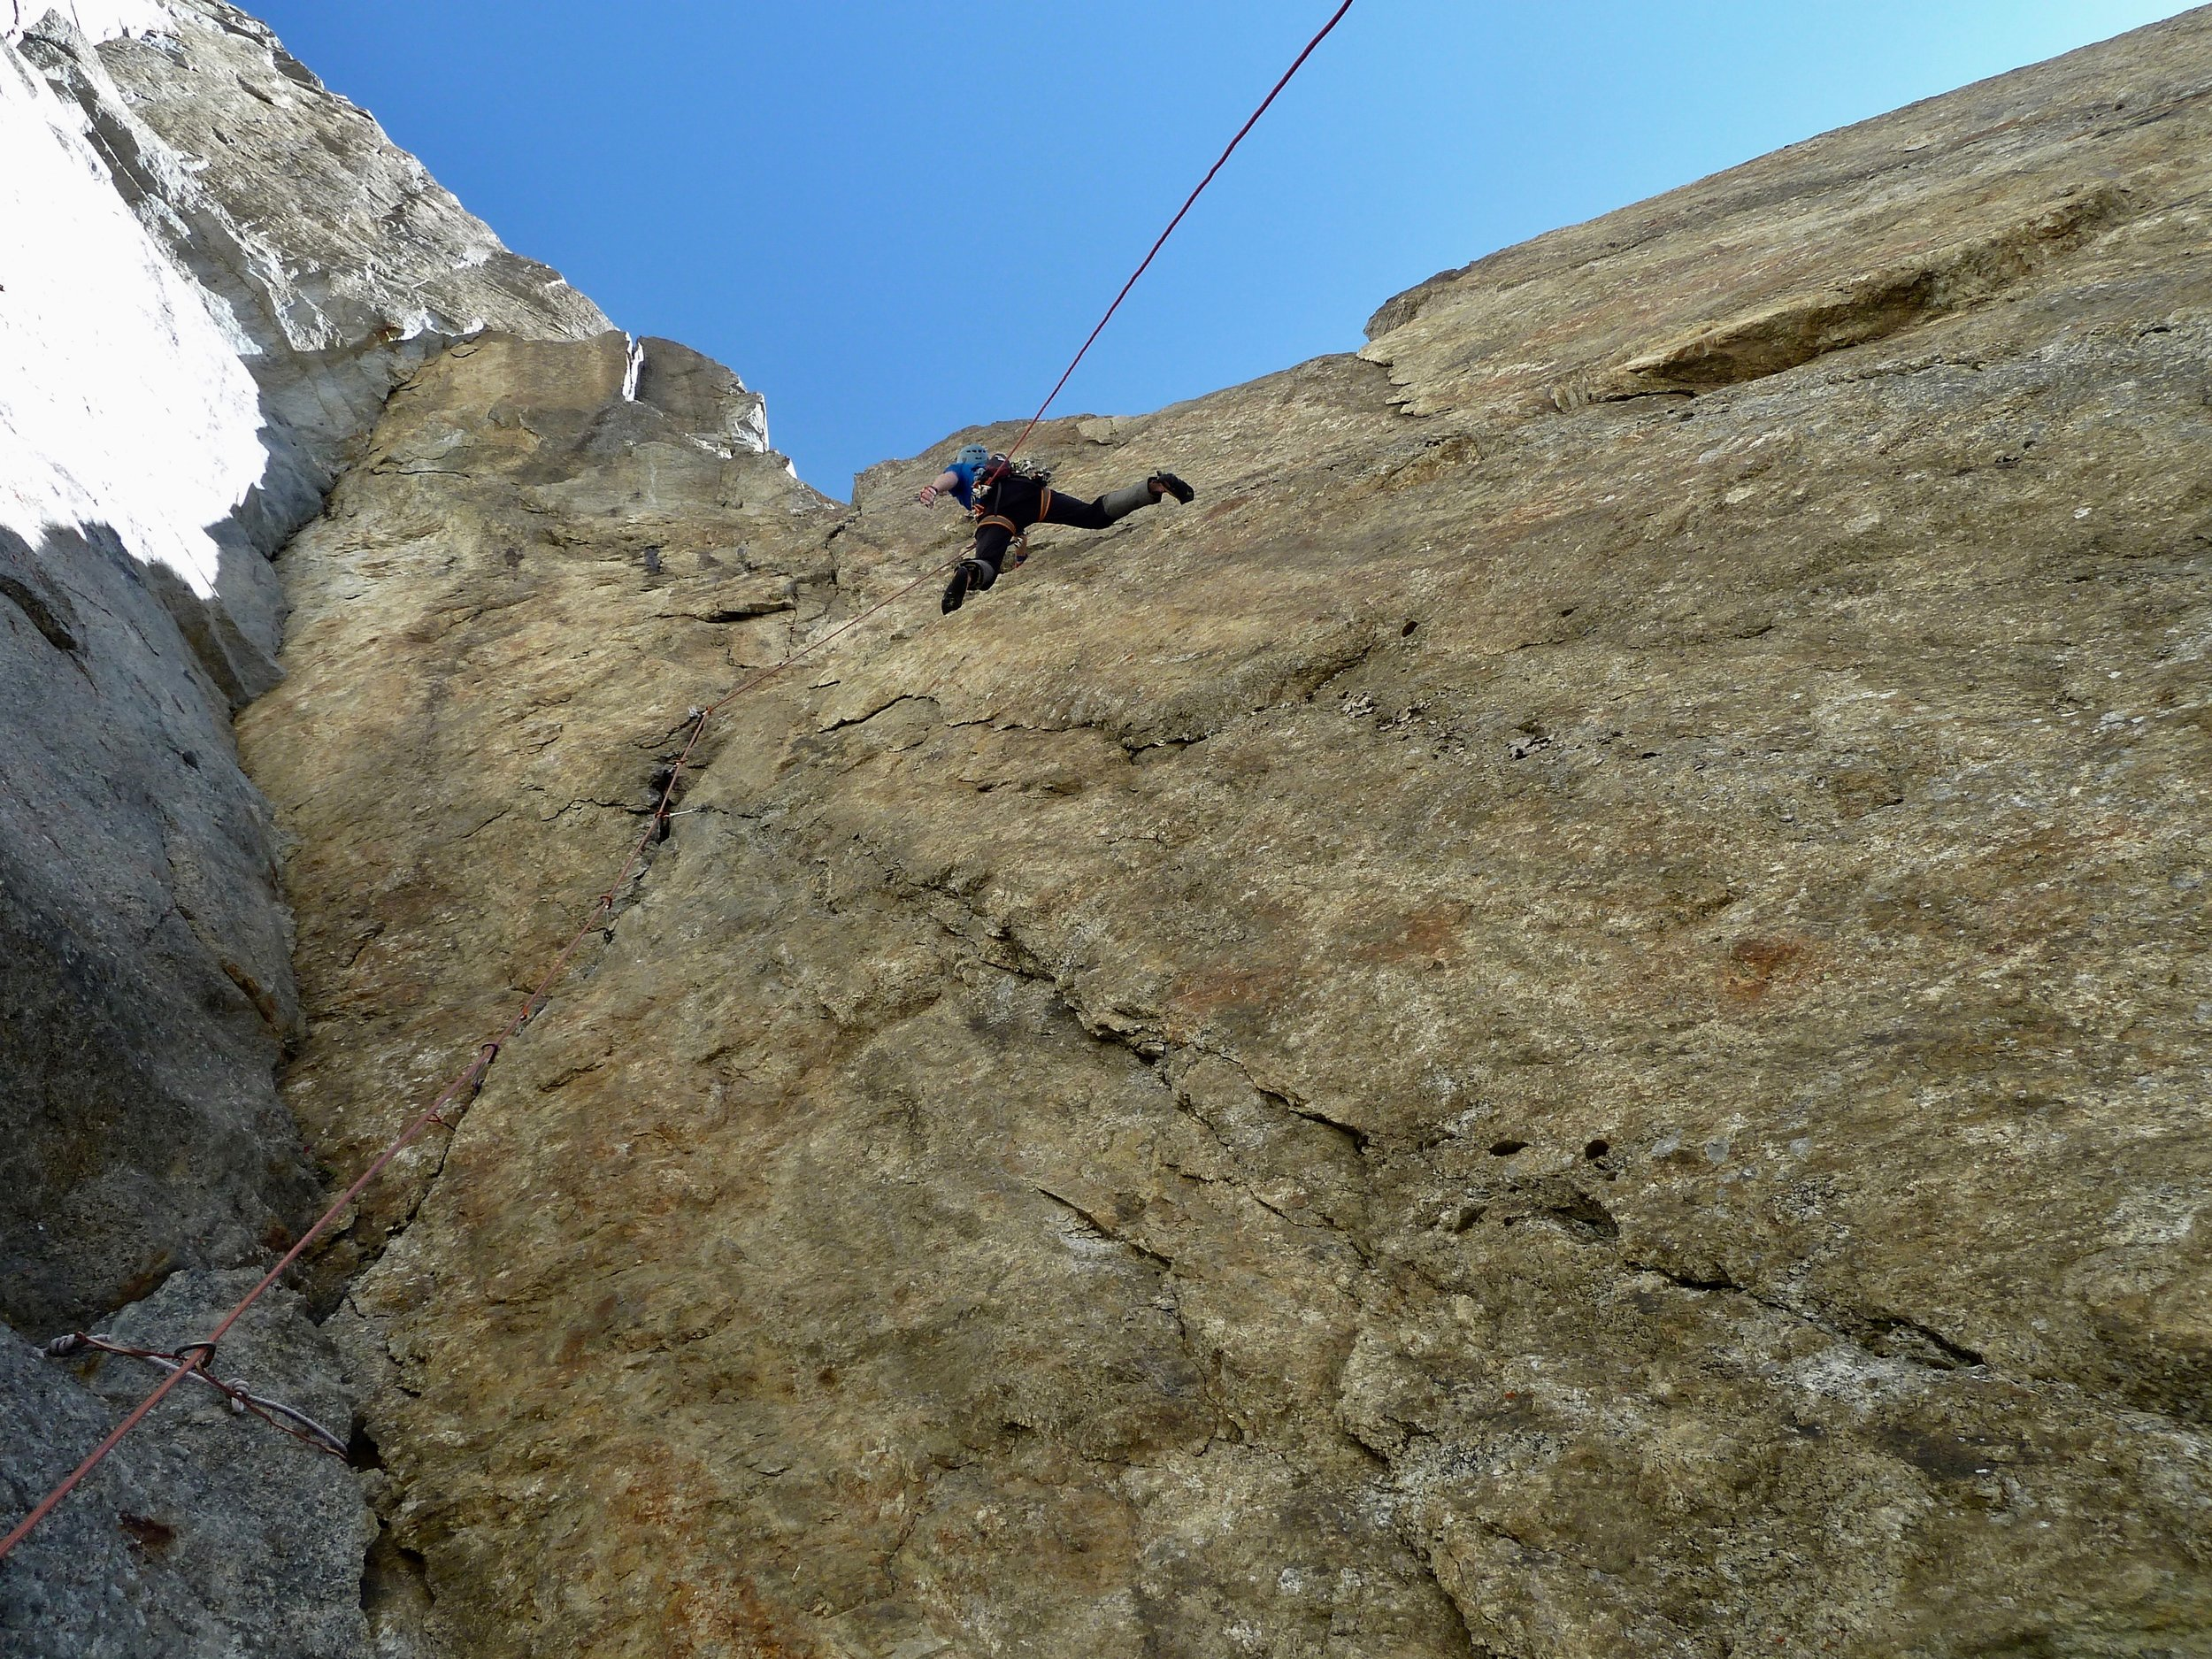 tony stone on the american route, south face of the aiguille du fou, chamonix. Mont Blanc massif